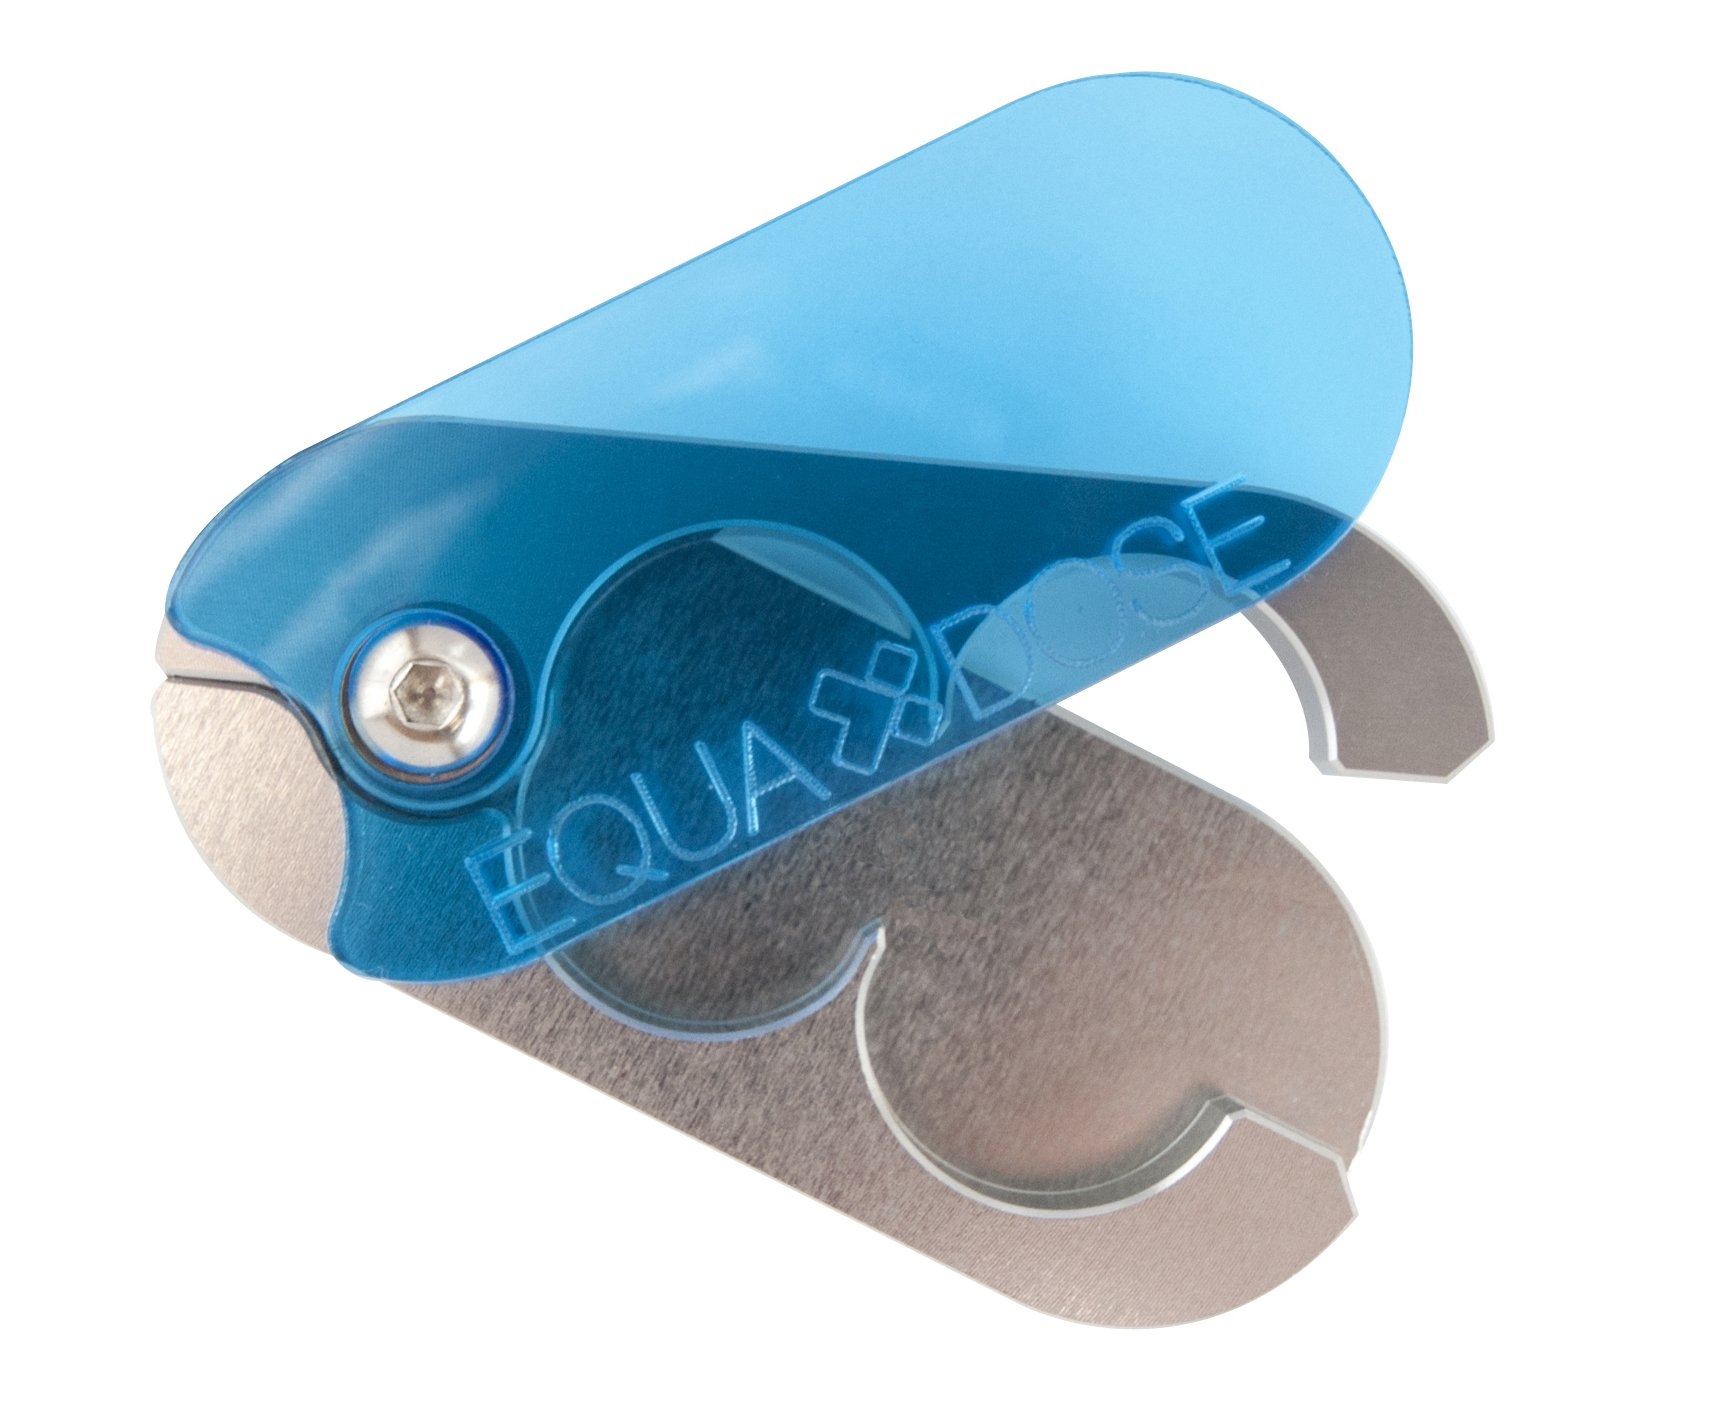 The Equadose Pill Splitter. The Best Pill Cutter Ever! Crafted in the USA. Doubles as a Pill Box. Great for Pets too!